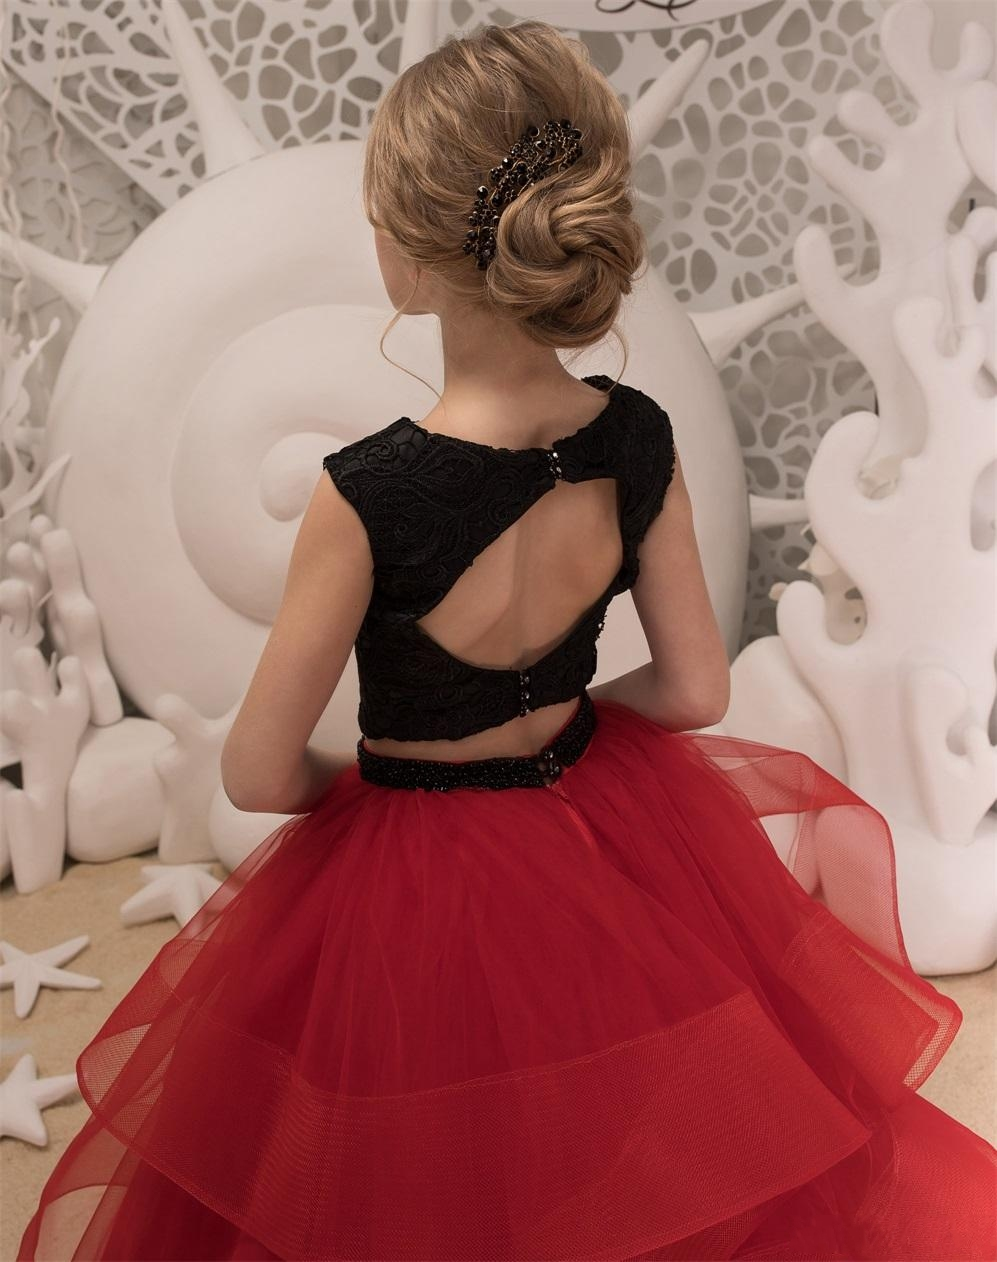 black-and-red-flower-girls-dresses-2018-ruffles (2)_conew1 -